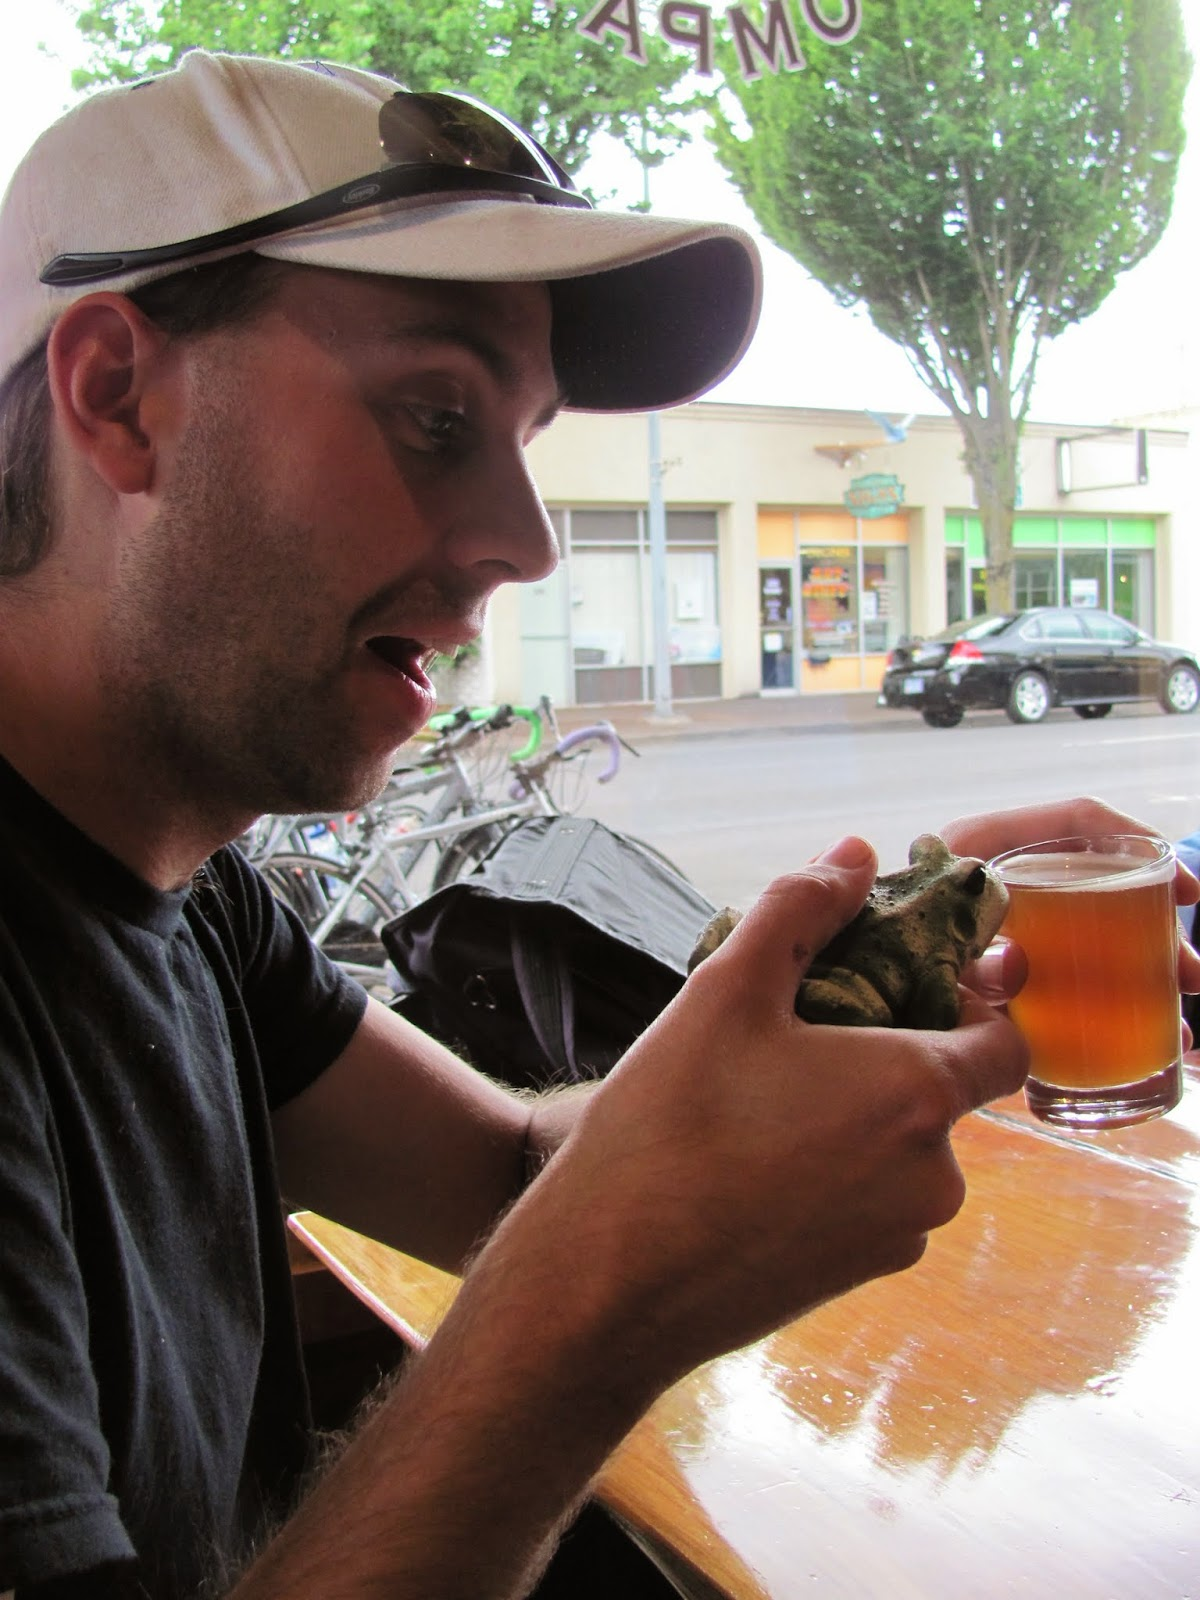 Frog enjoys a cold beverage at Plank Town Brewery in Springfield, Oregon